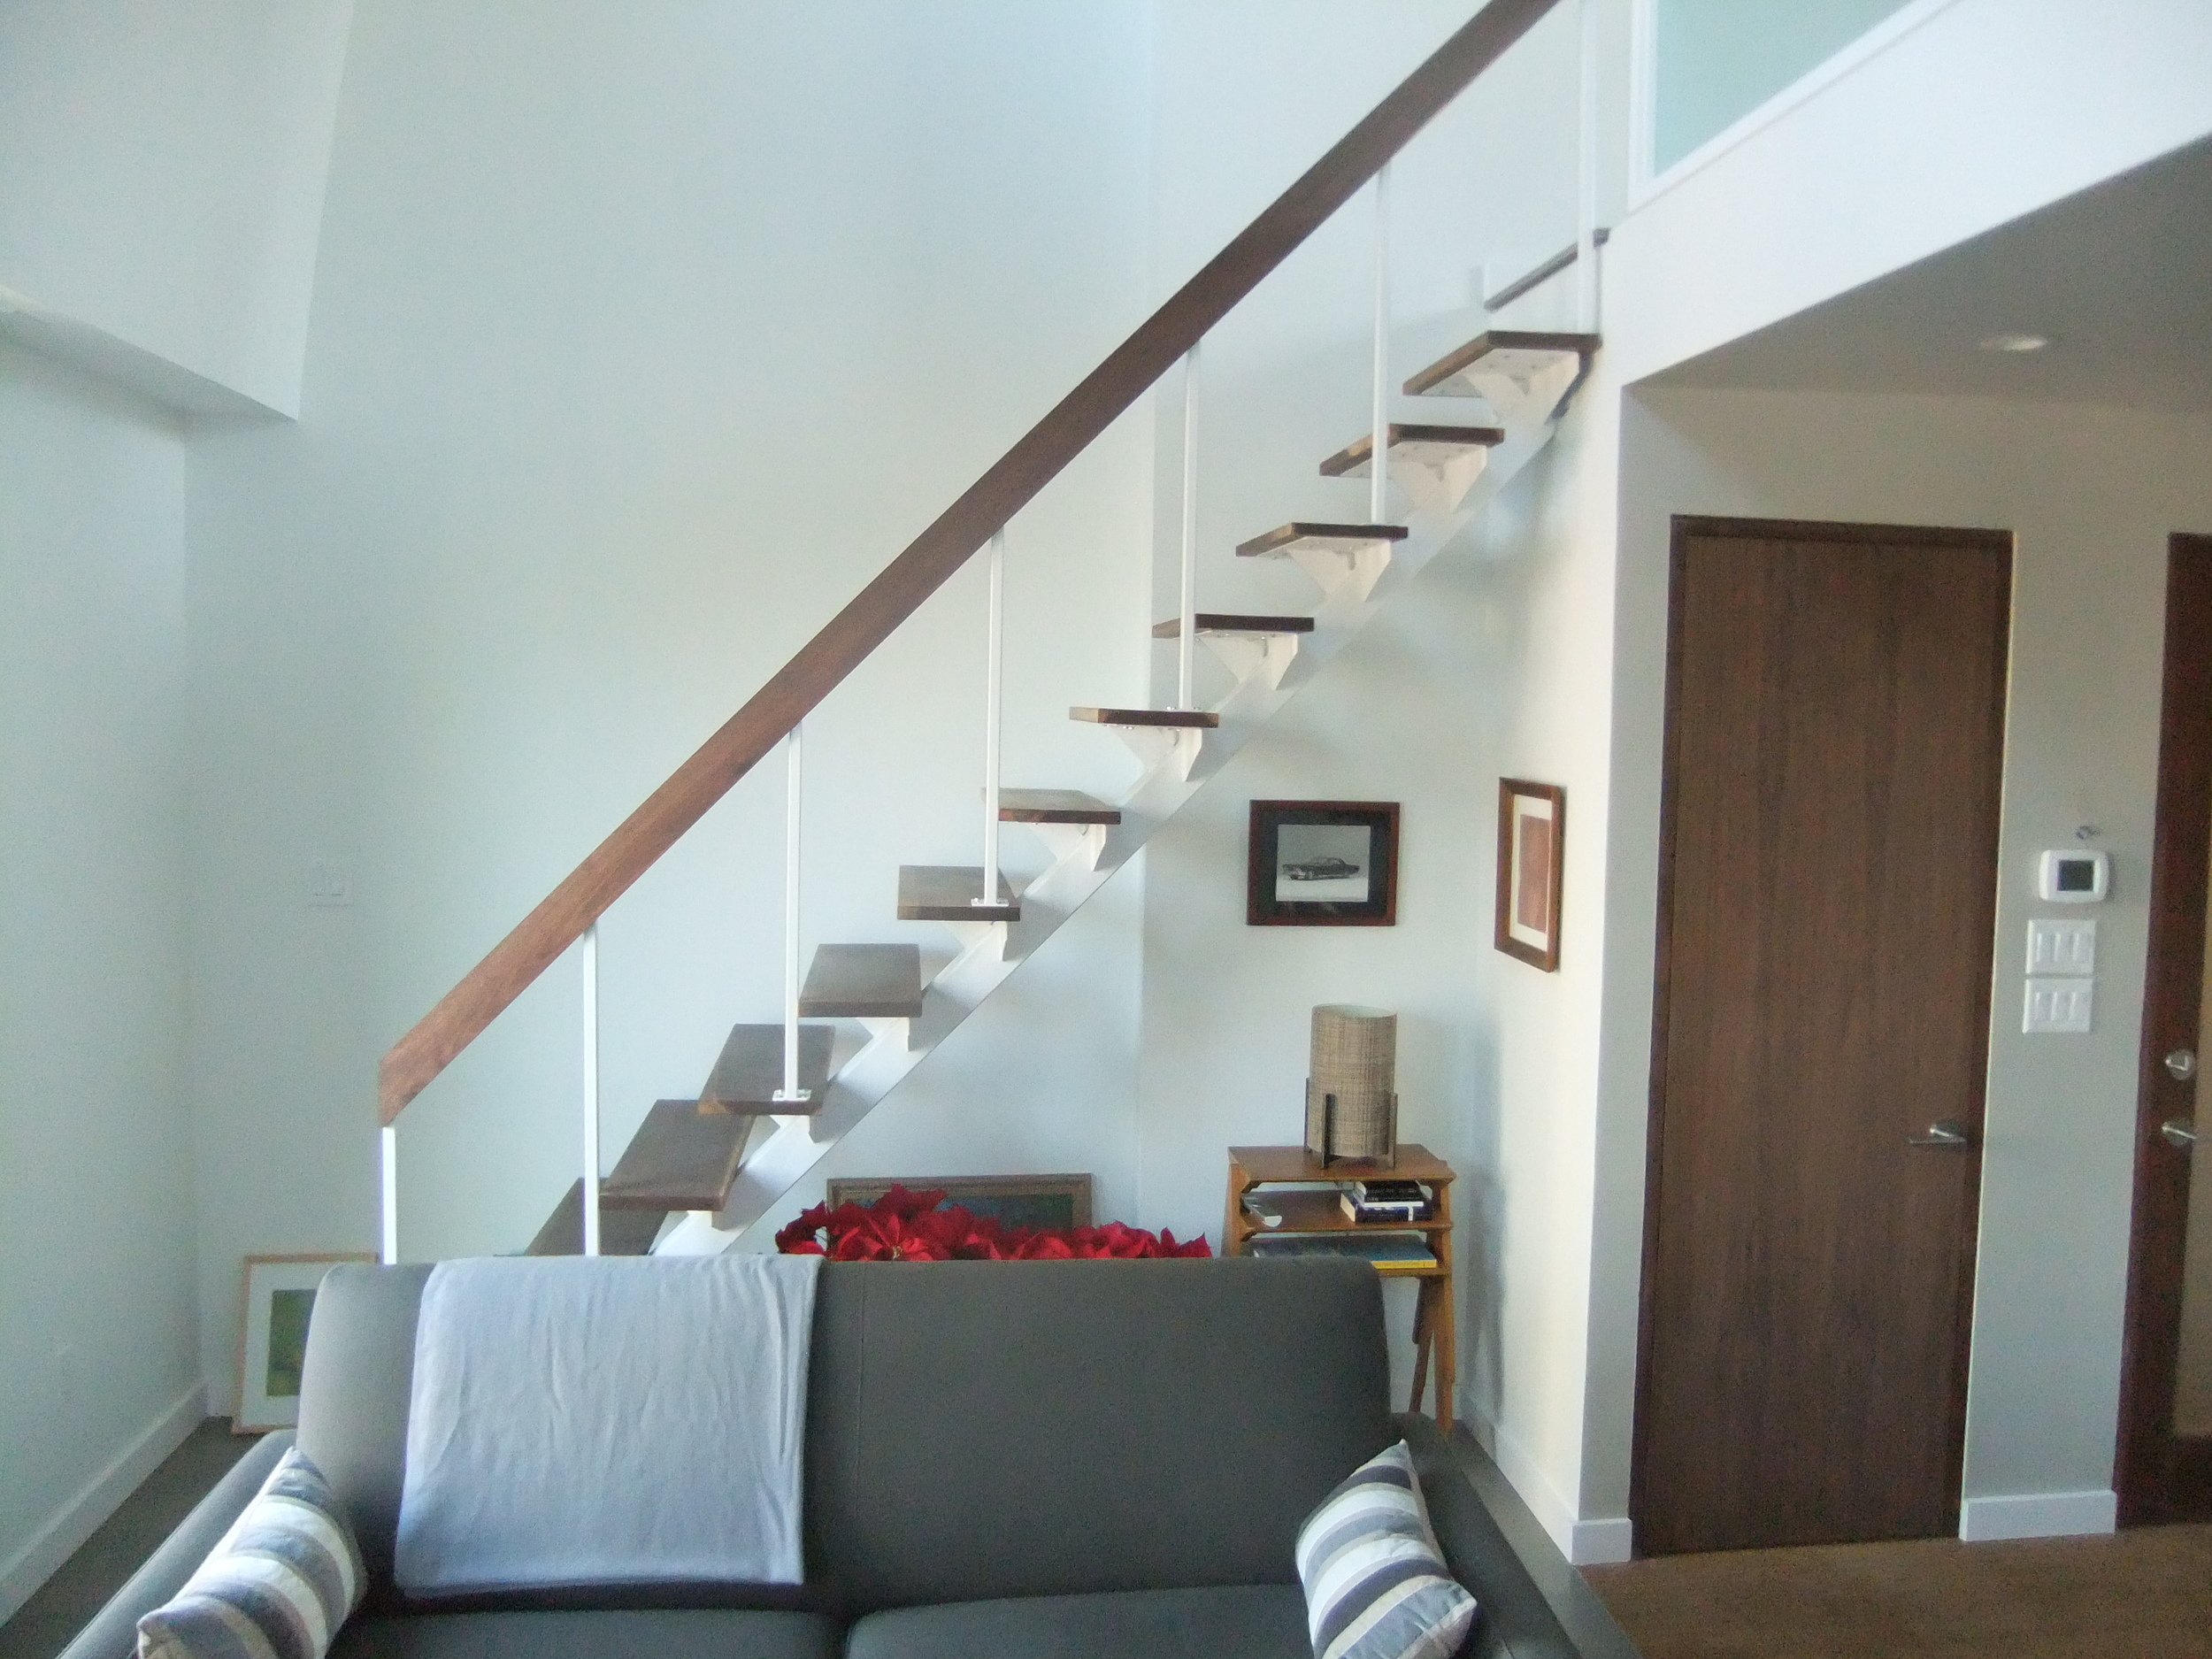 kitch-stairs1.JPG